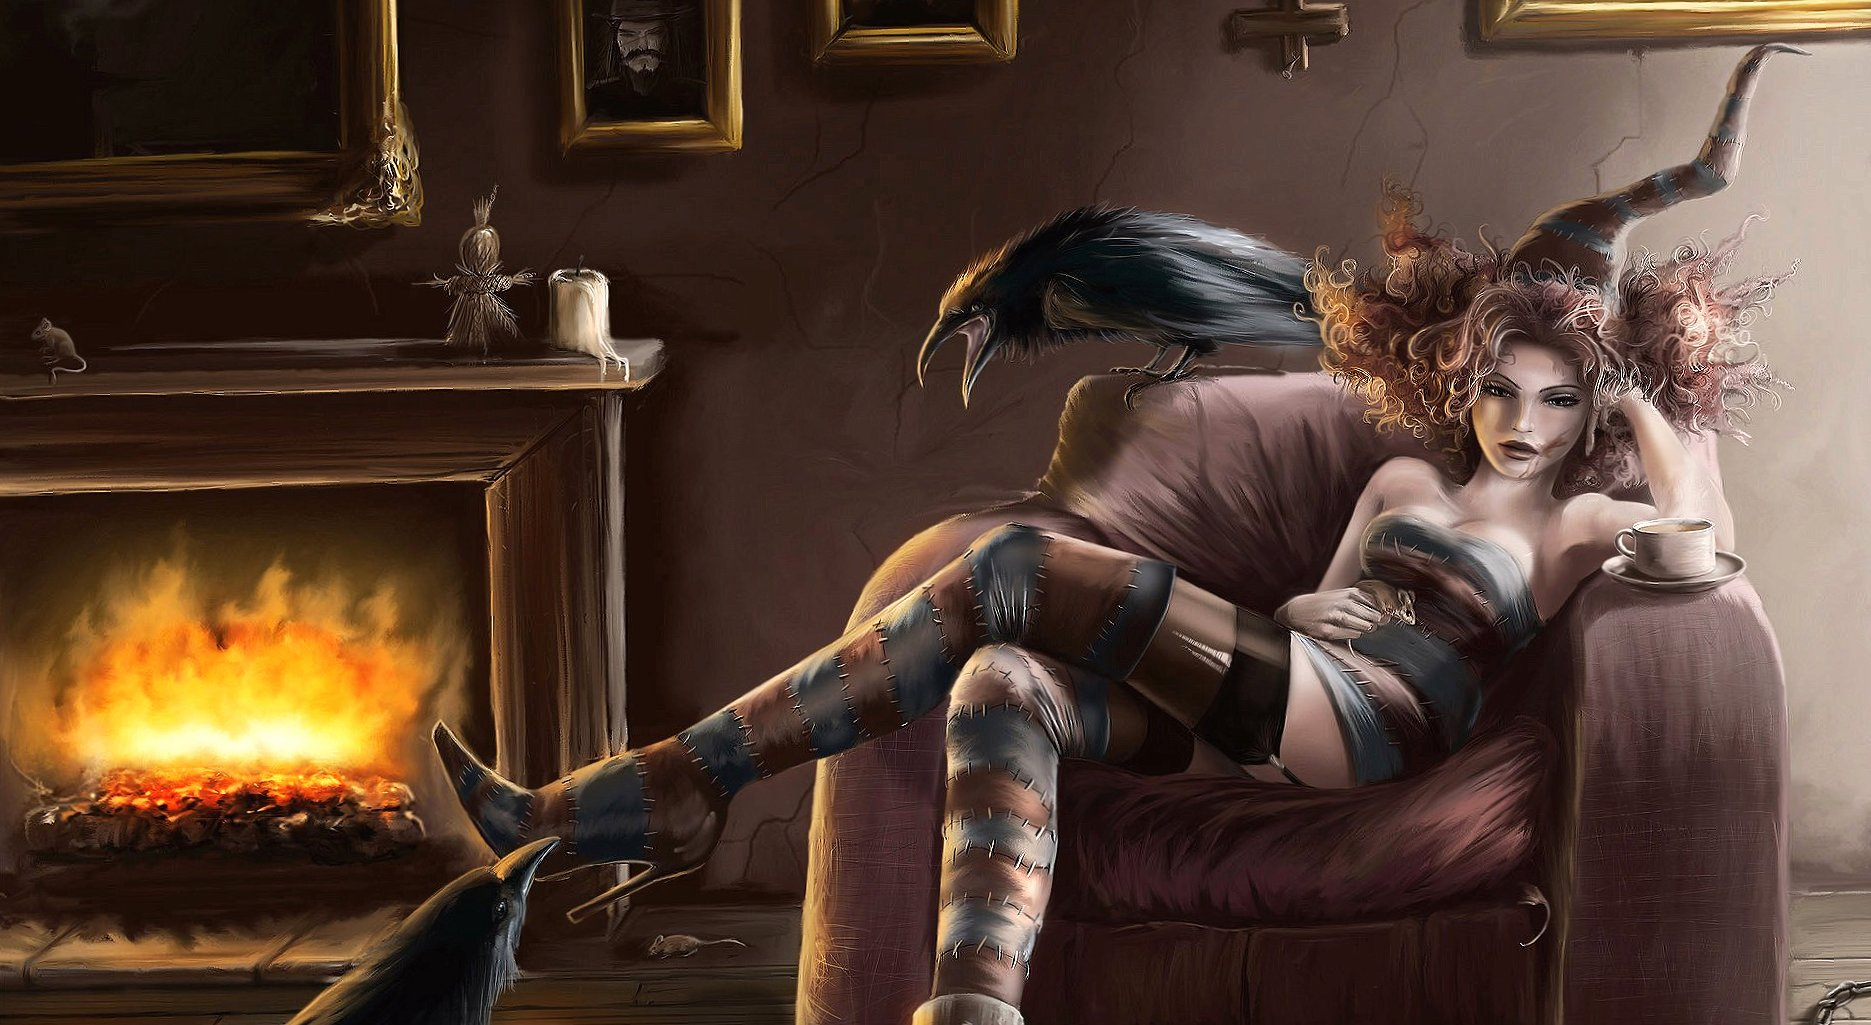 Crow fire coffe and girl fantasy wallpapers HD quality